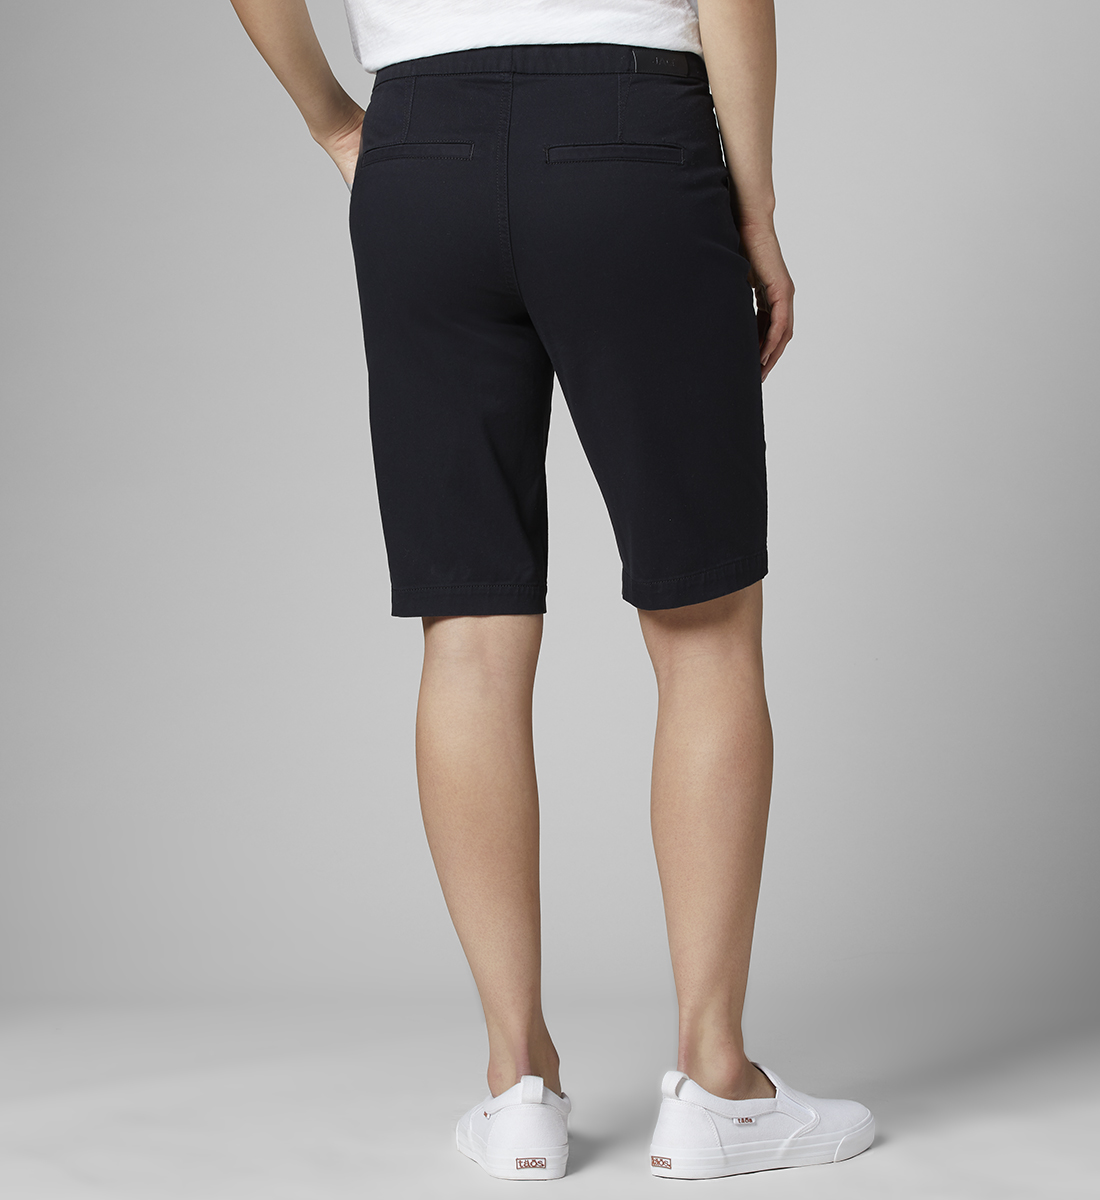 Gracie Mid Rise Bermuda Pull-On Short, Black, hi-res